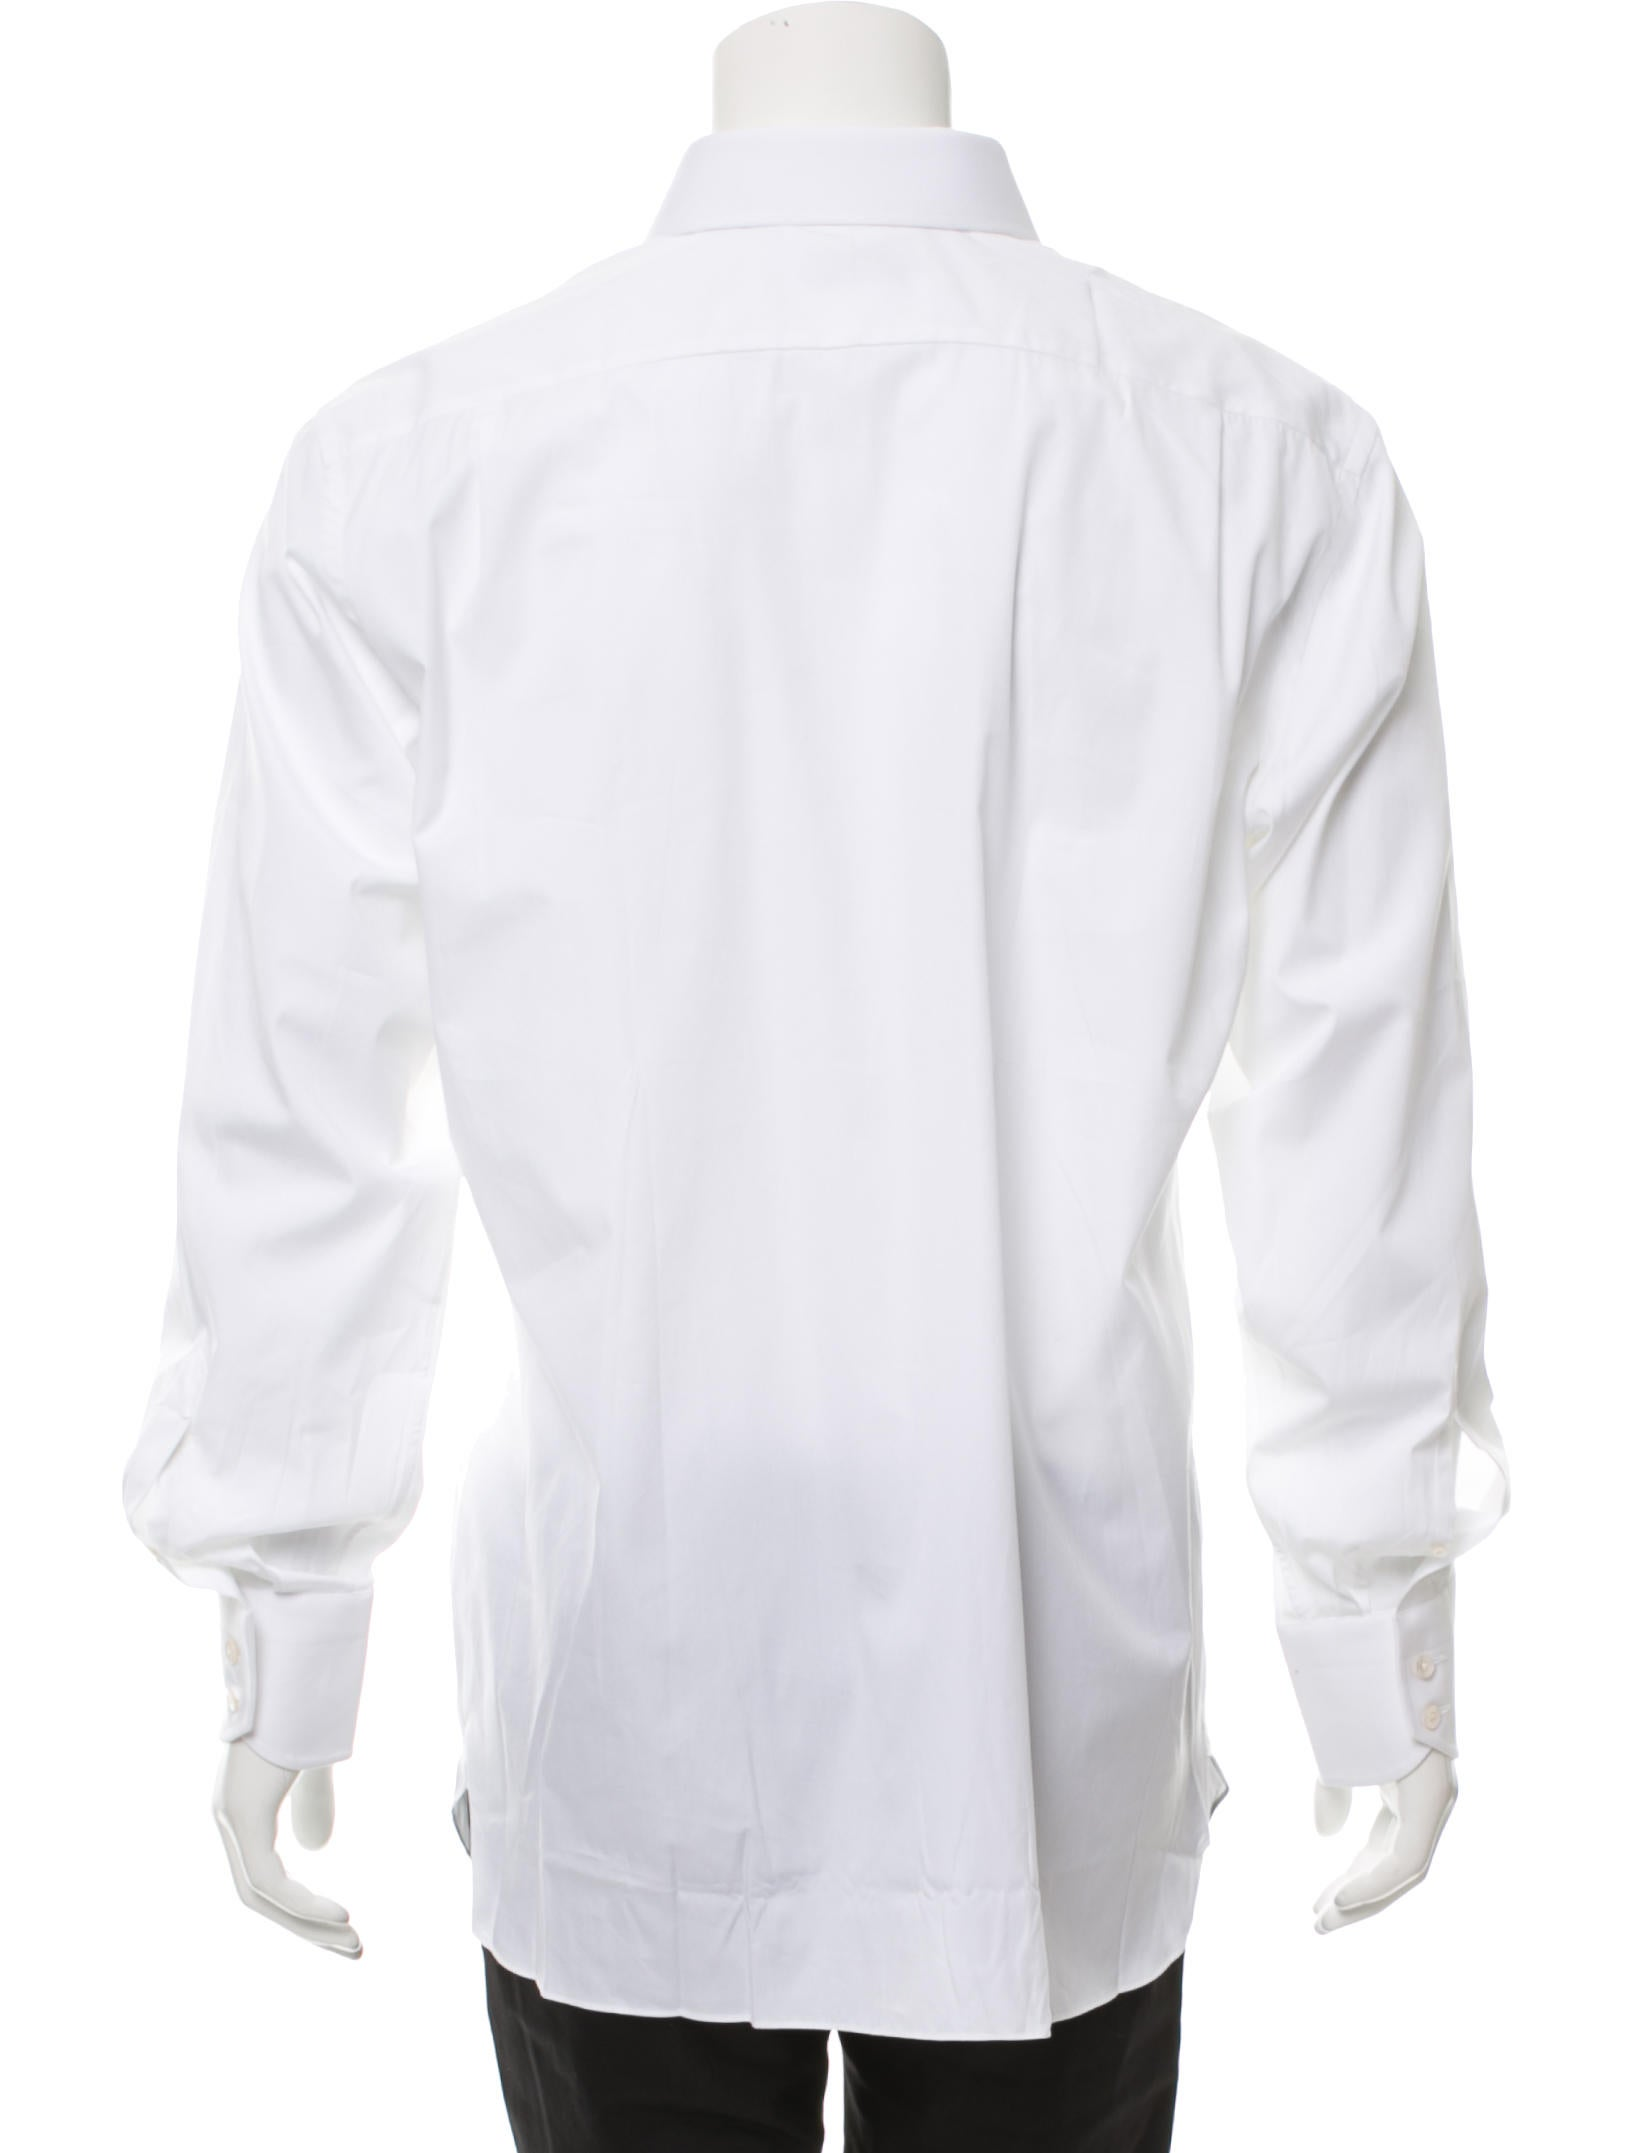 Tom ford spread collar button up shirt clothing for What is a spread collar shirt